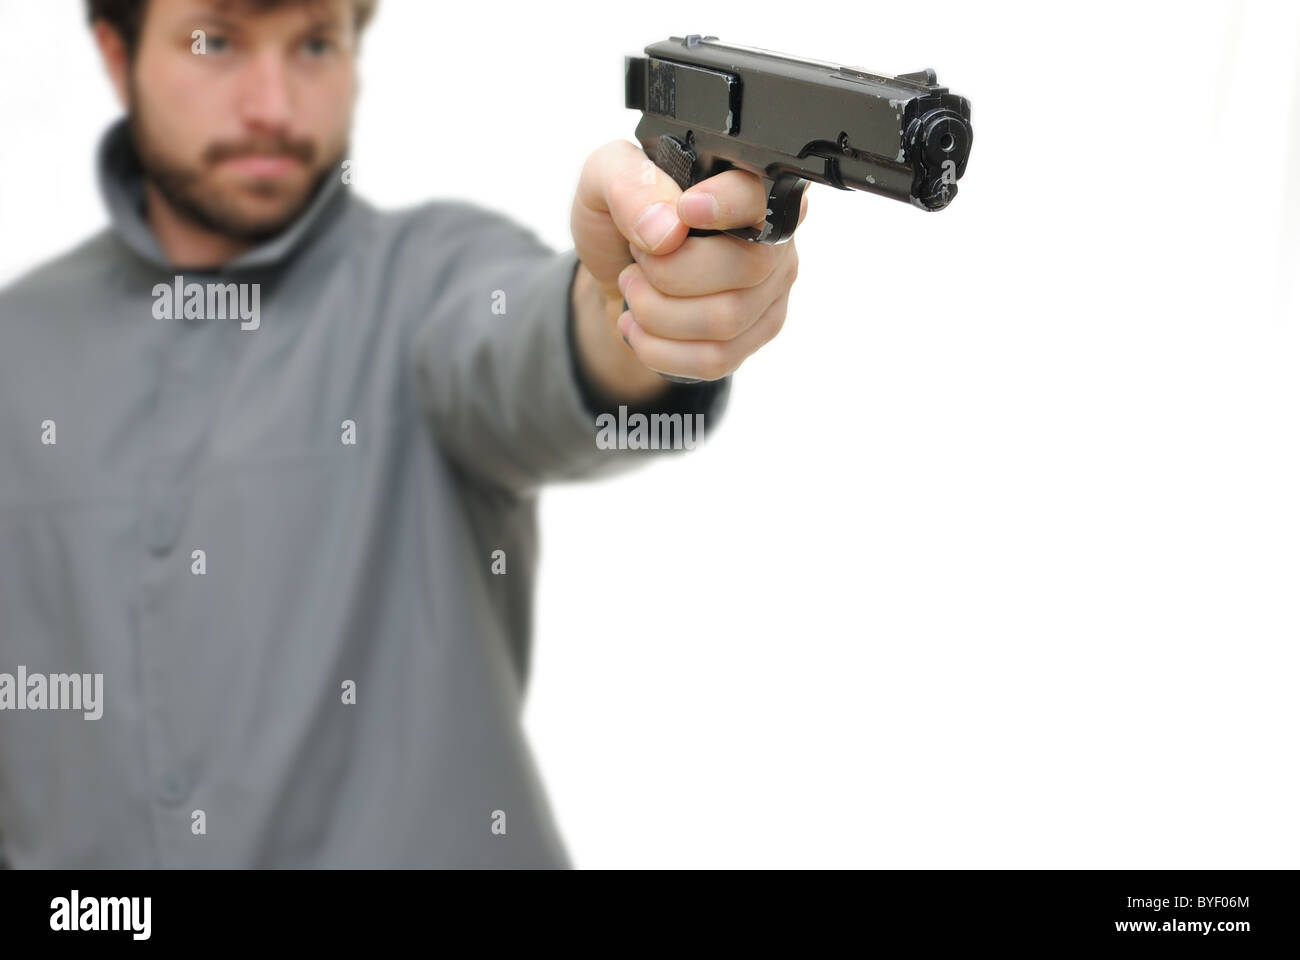 Man pointing a gun isolated on white background. - Stock Image